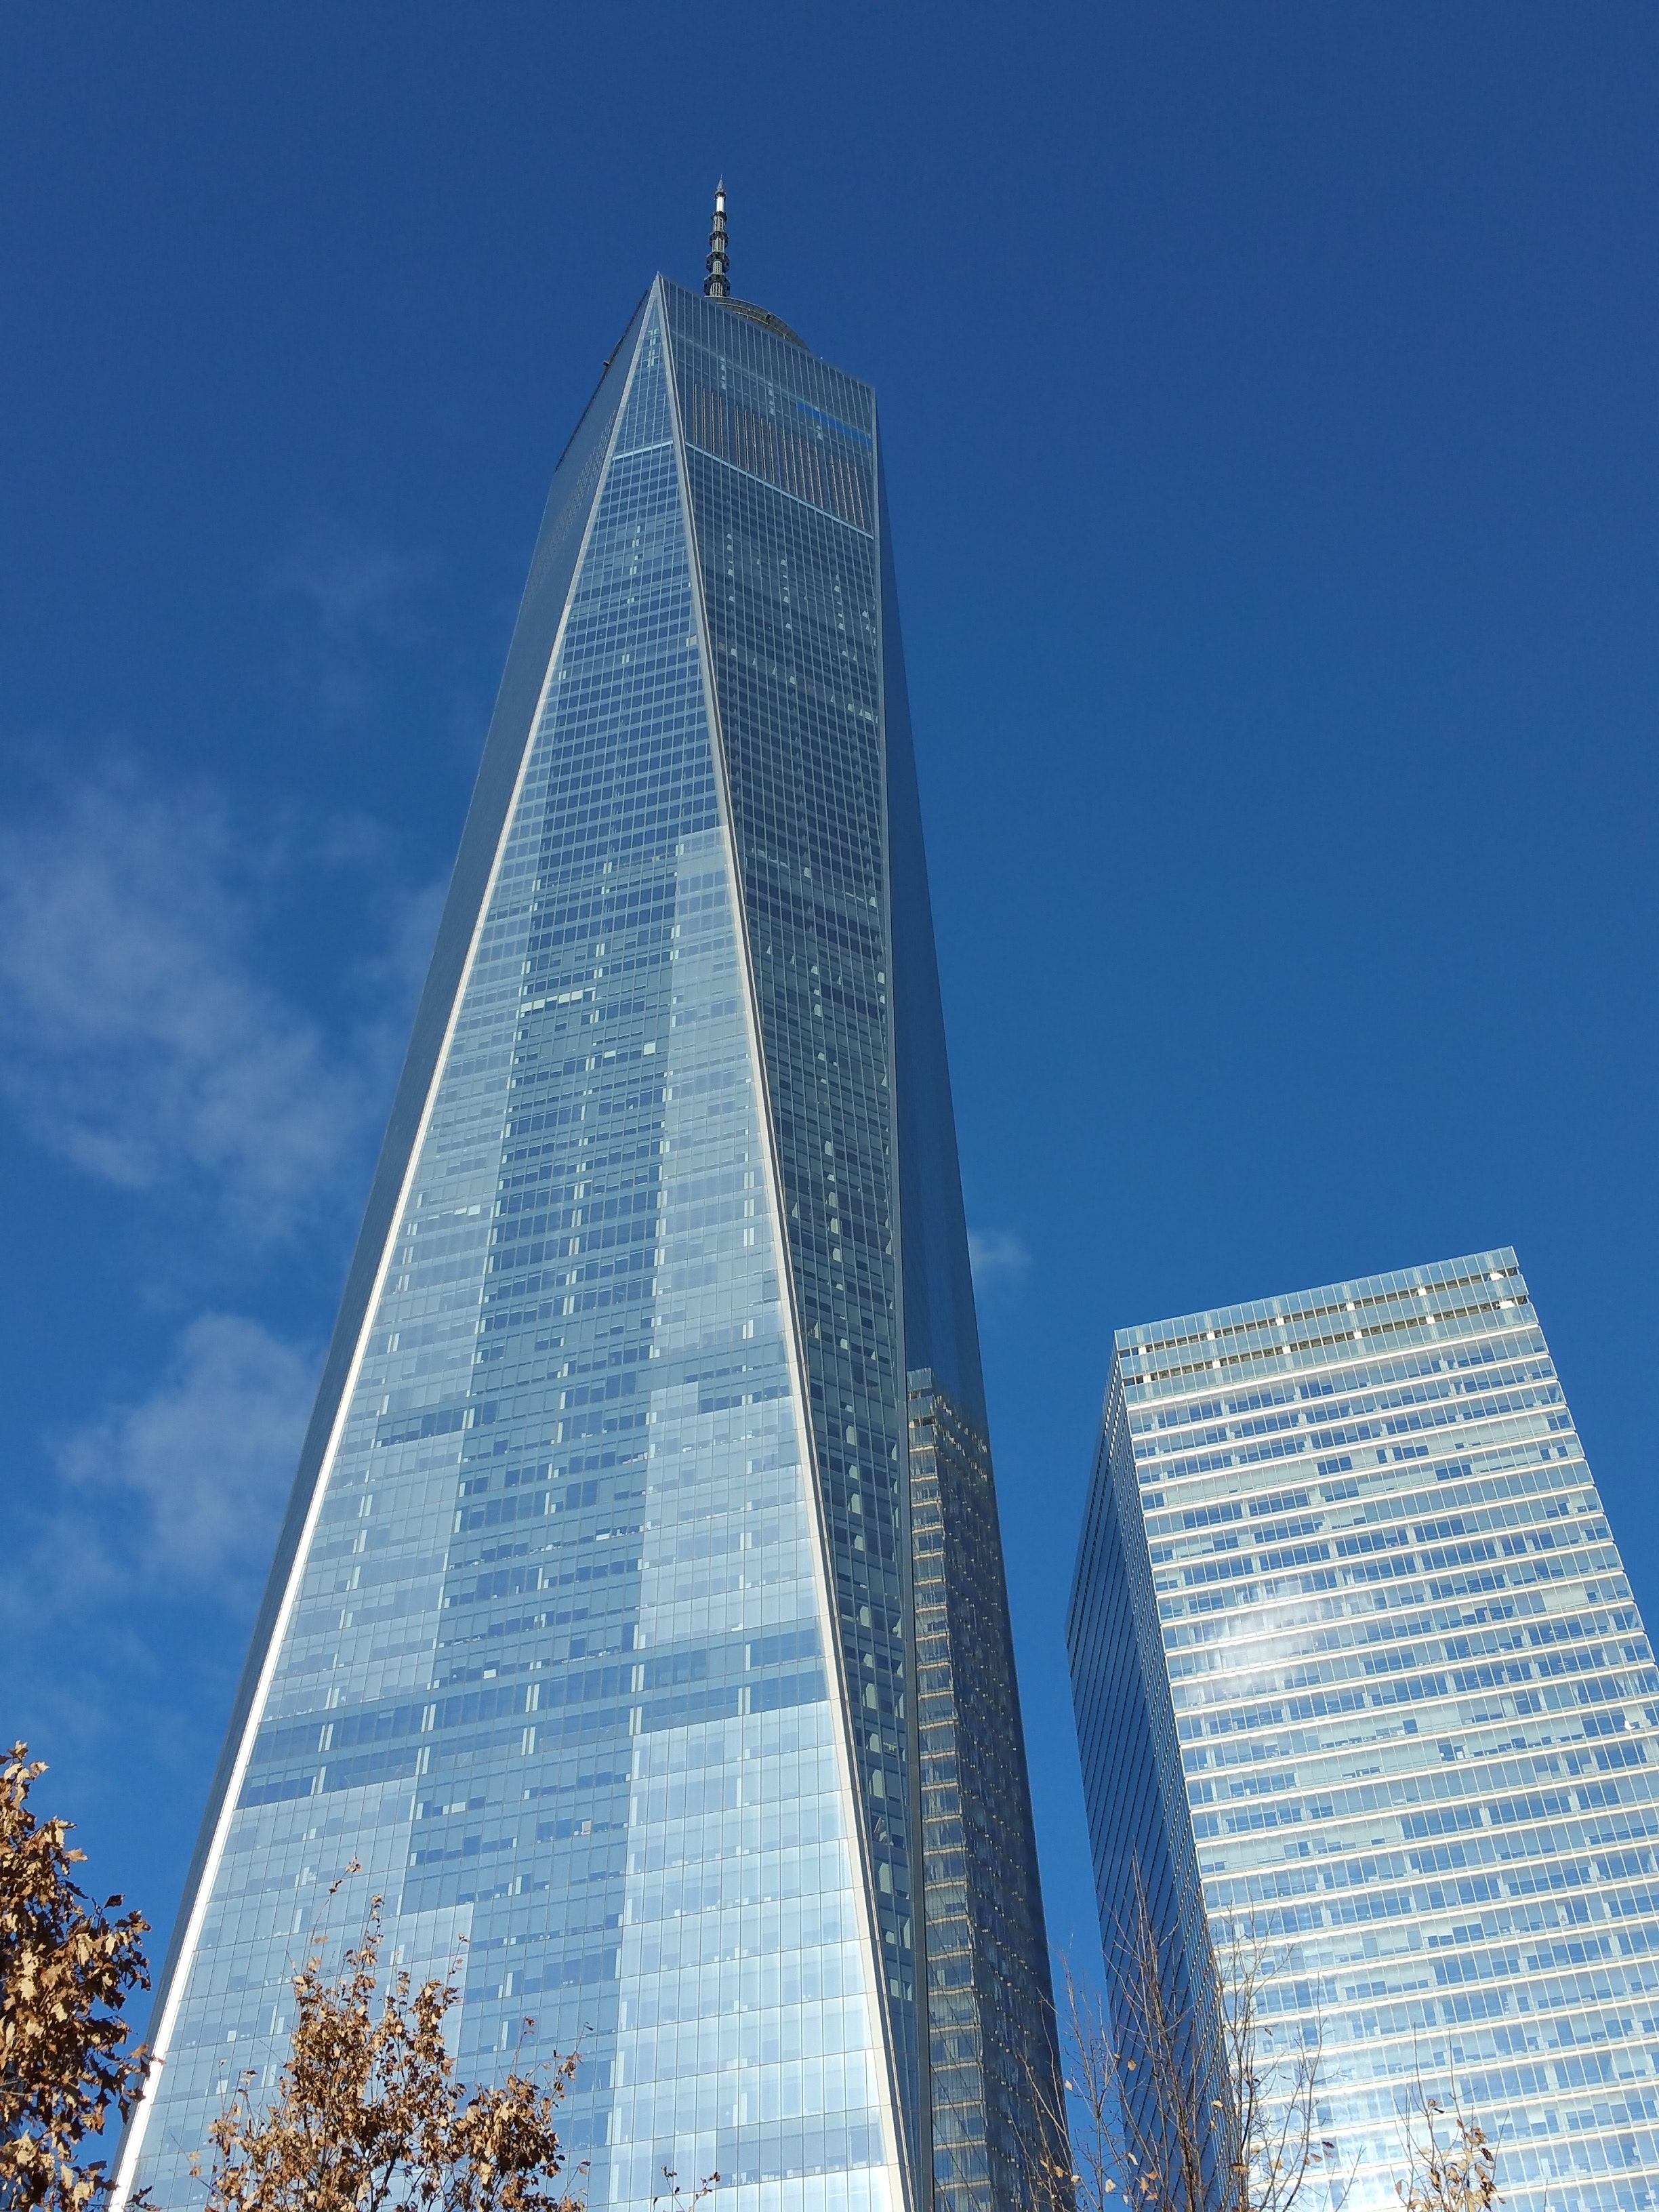 Low Angle Photography Of High Rise Buildings 183 Free Stock